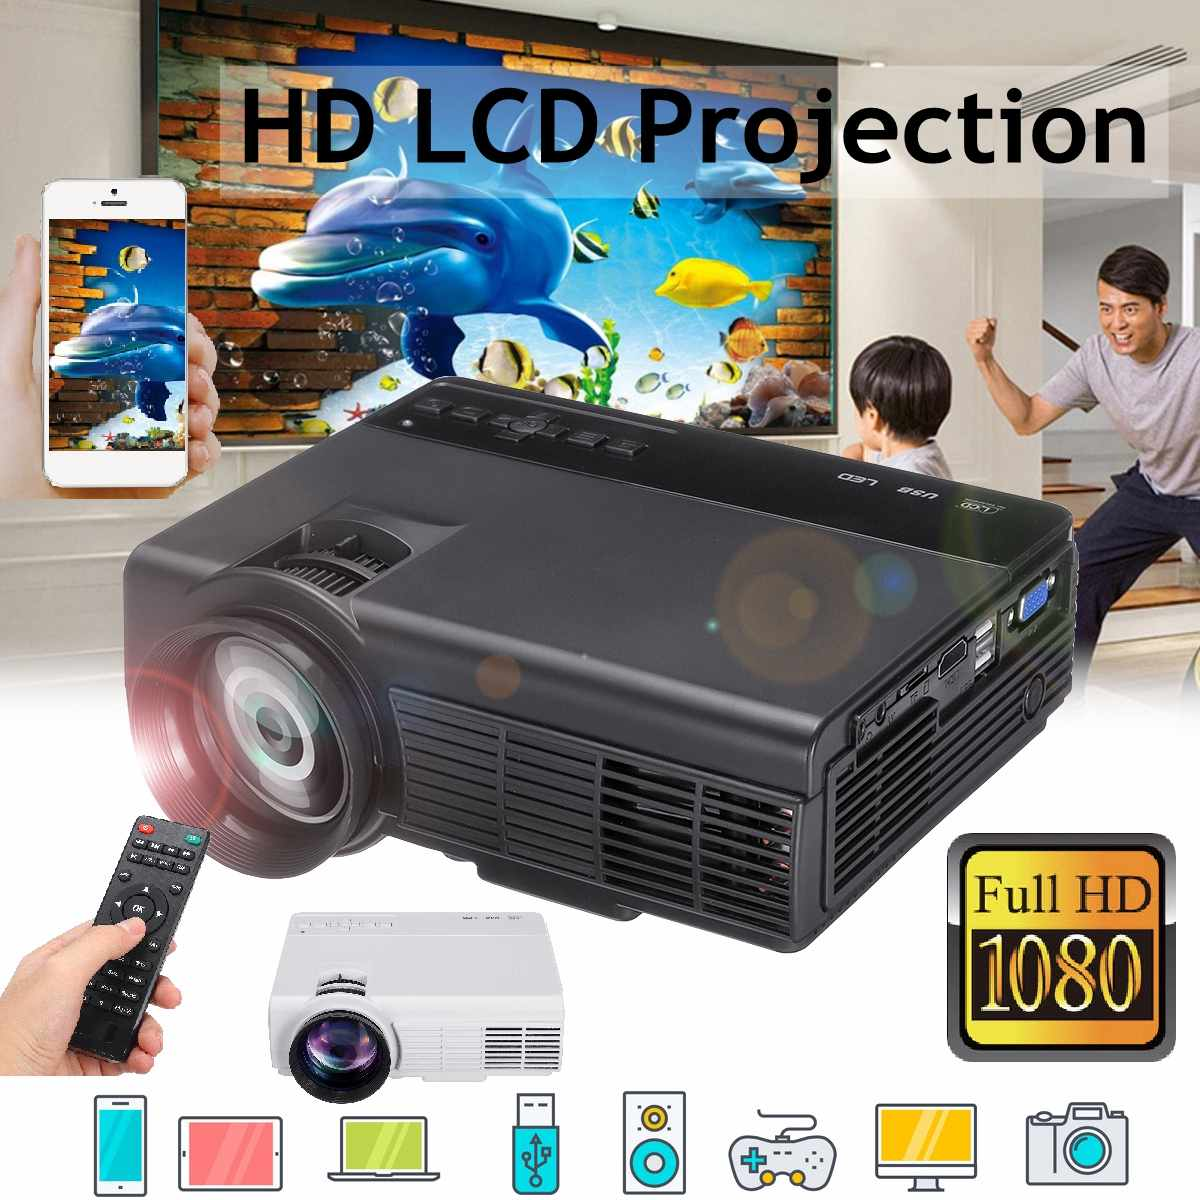 LEORY New Mini Projector Full 800x480 support 1080P 3D HD LED Projector Multimedia Home Theater USB TV Home Theatre System